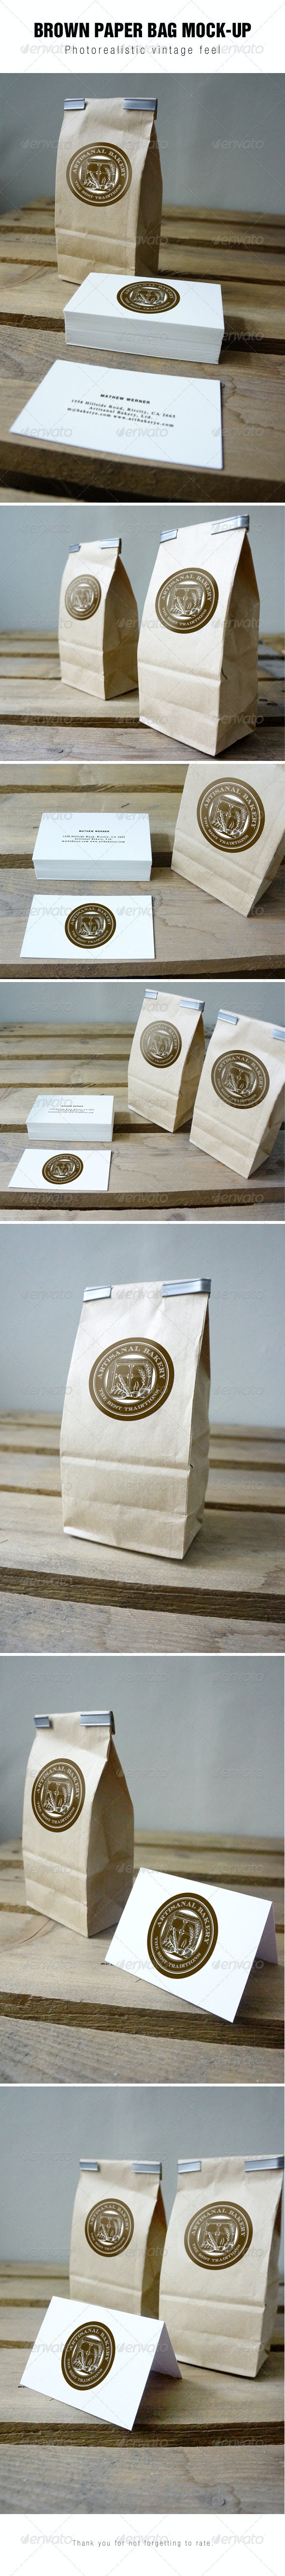 Brown Paper Bag Mockup - Packaging Product Mock-Ups